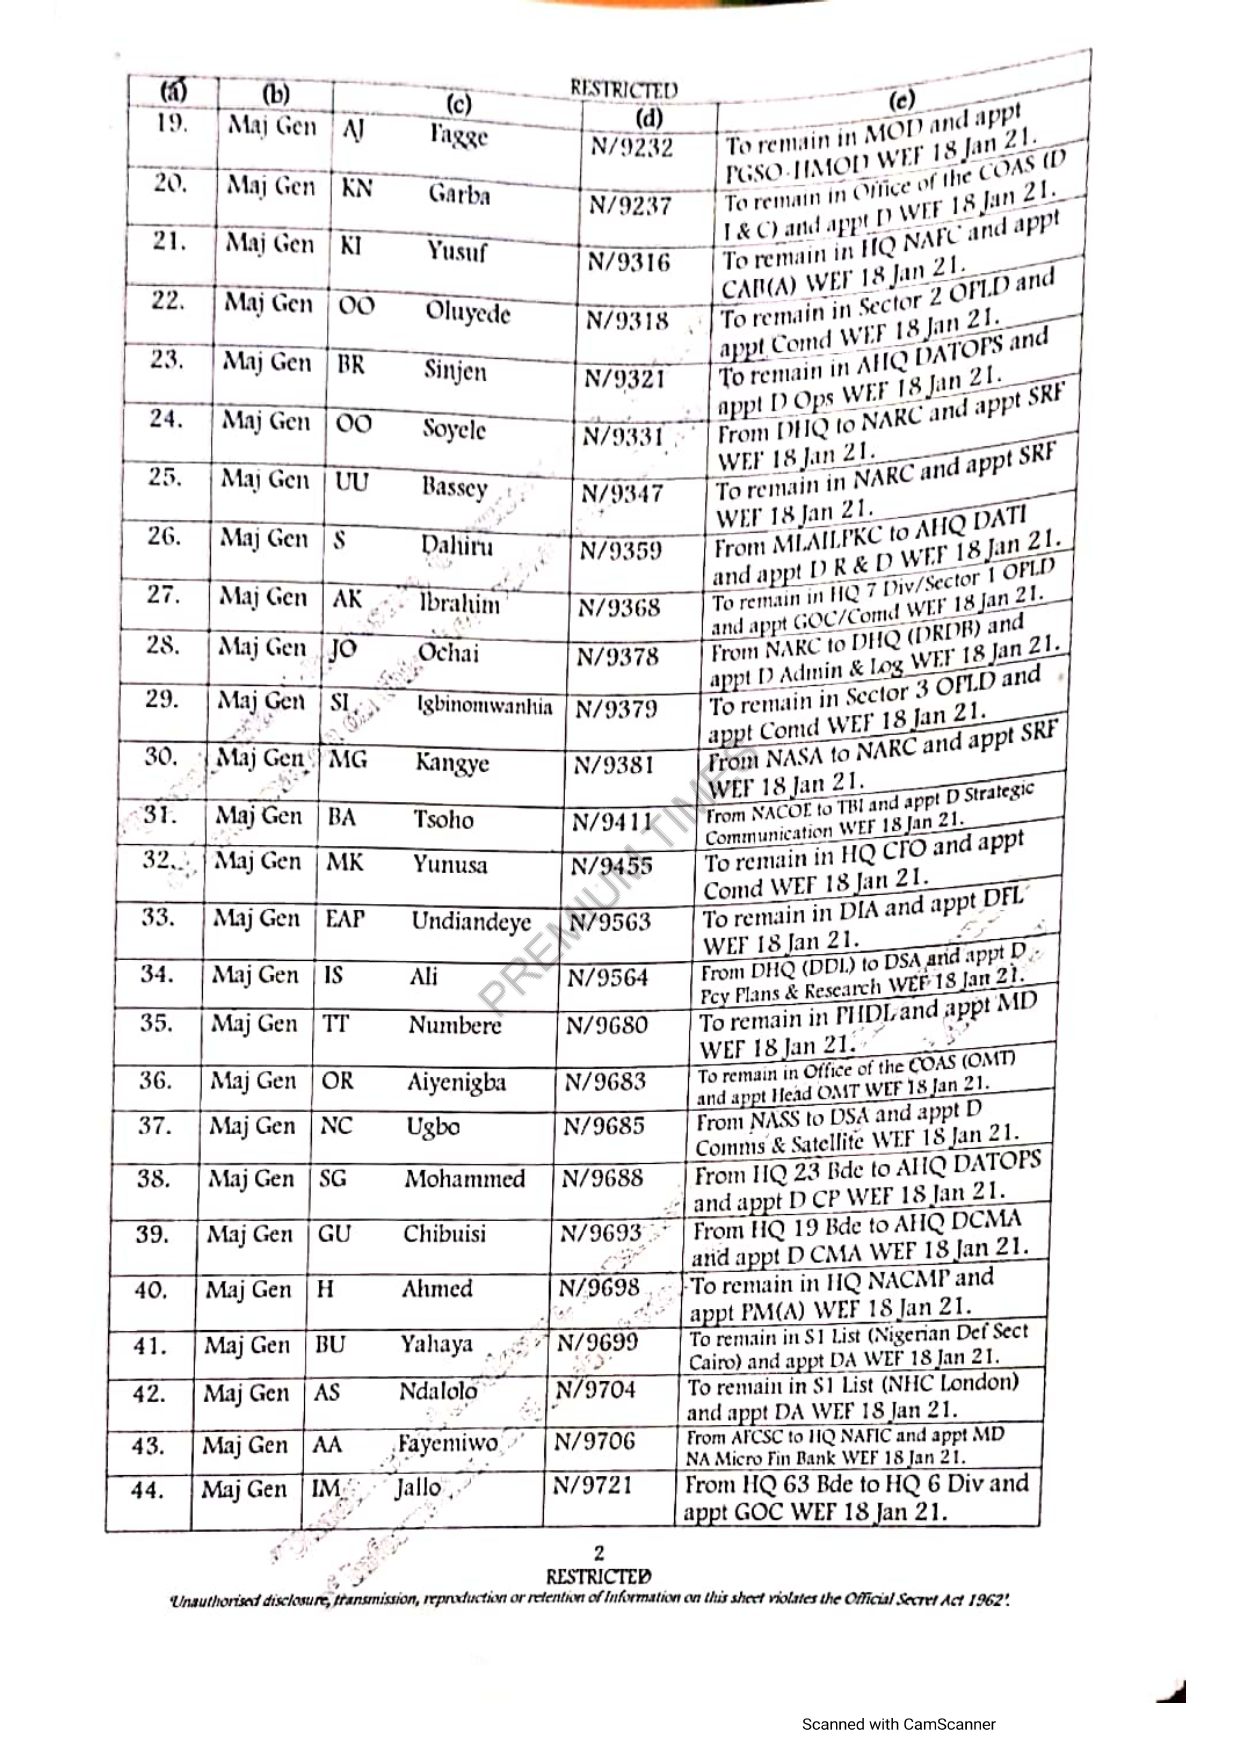 4 6037122442051193020 watermark page 0002 - JUST IN: Nigeria Army Redeploys Generals, Colonels, Others (See Full List)